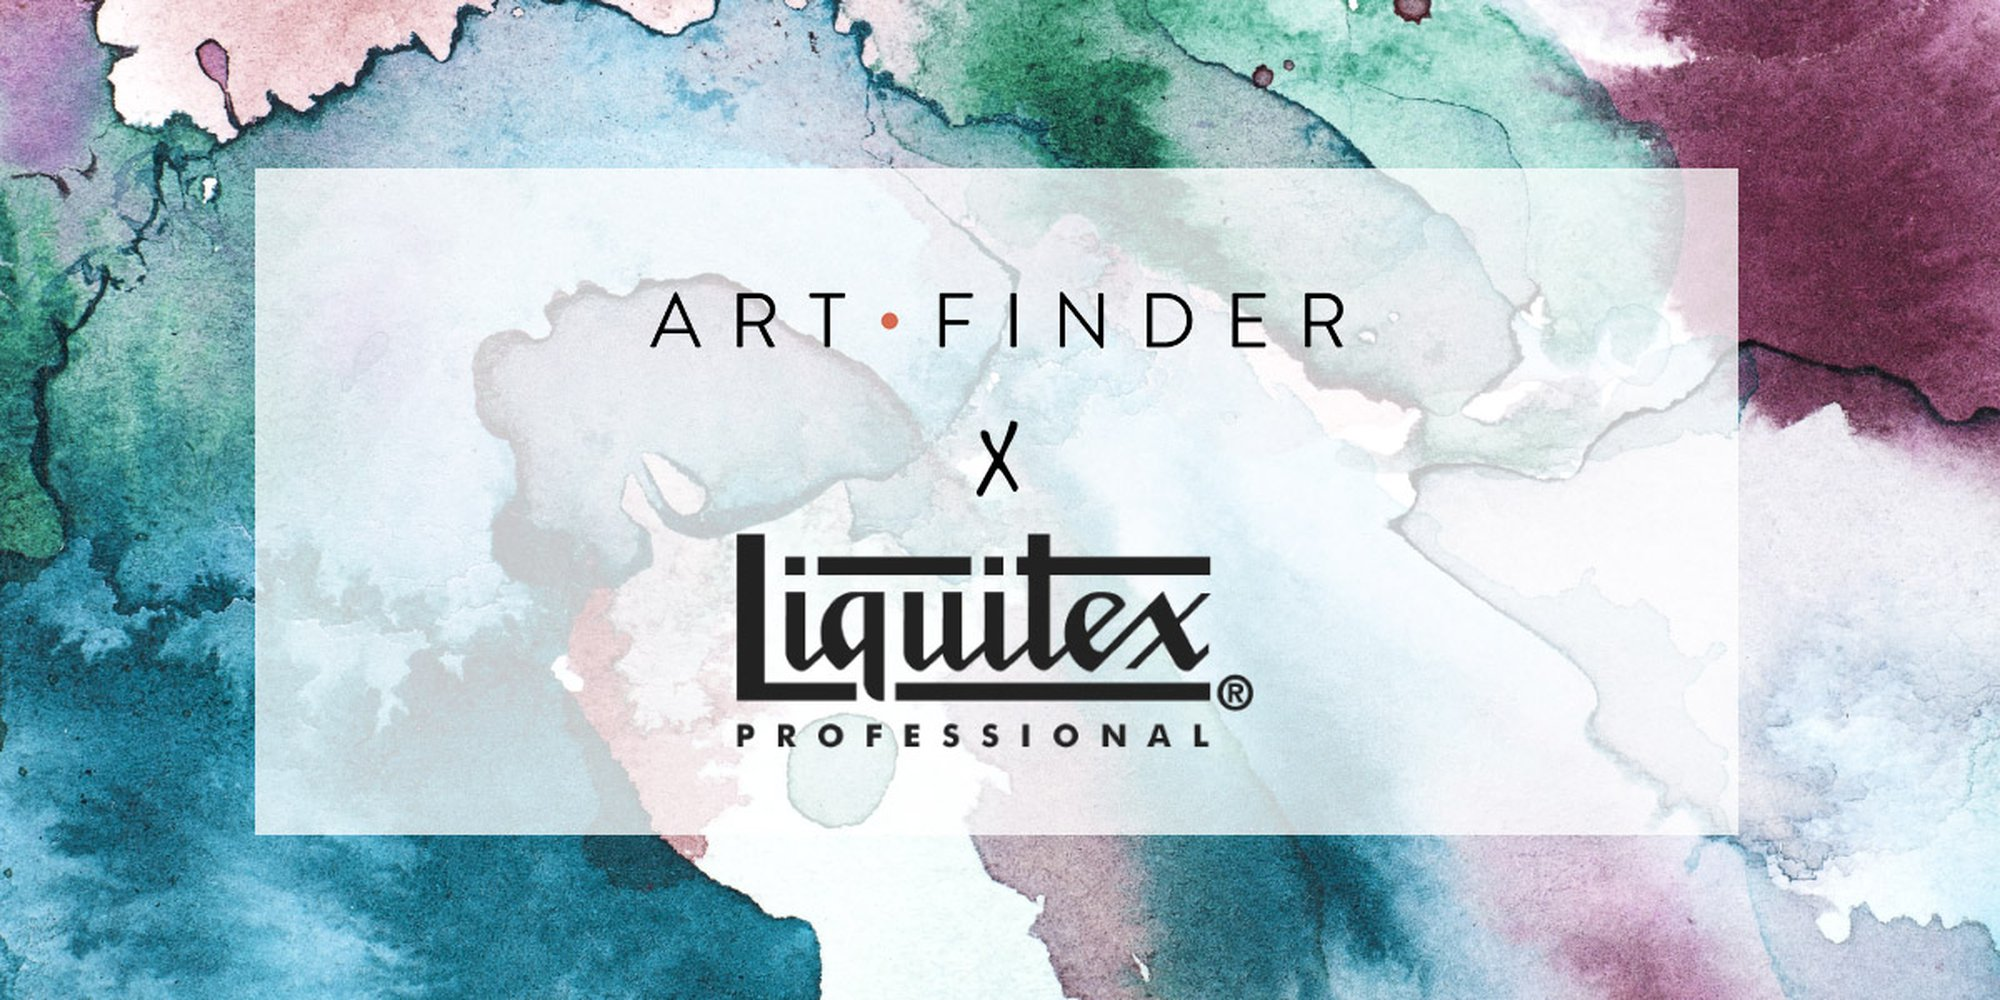 Win Liquitex's new Special Release Muted Collection and be featured on Artfinder!